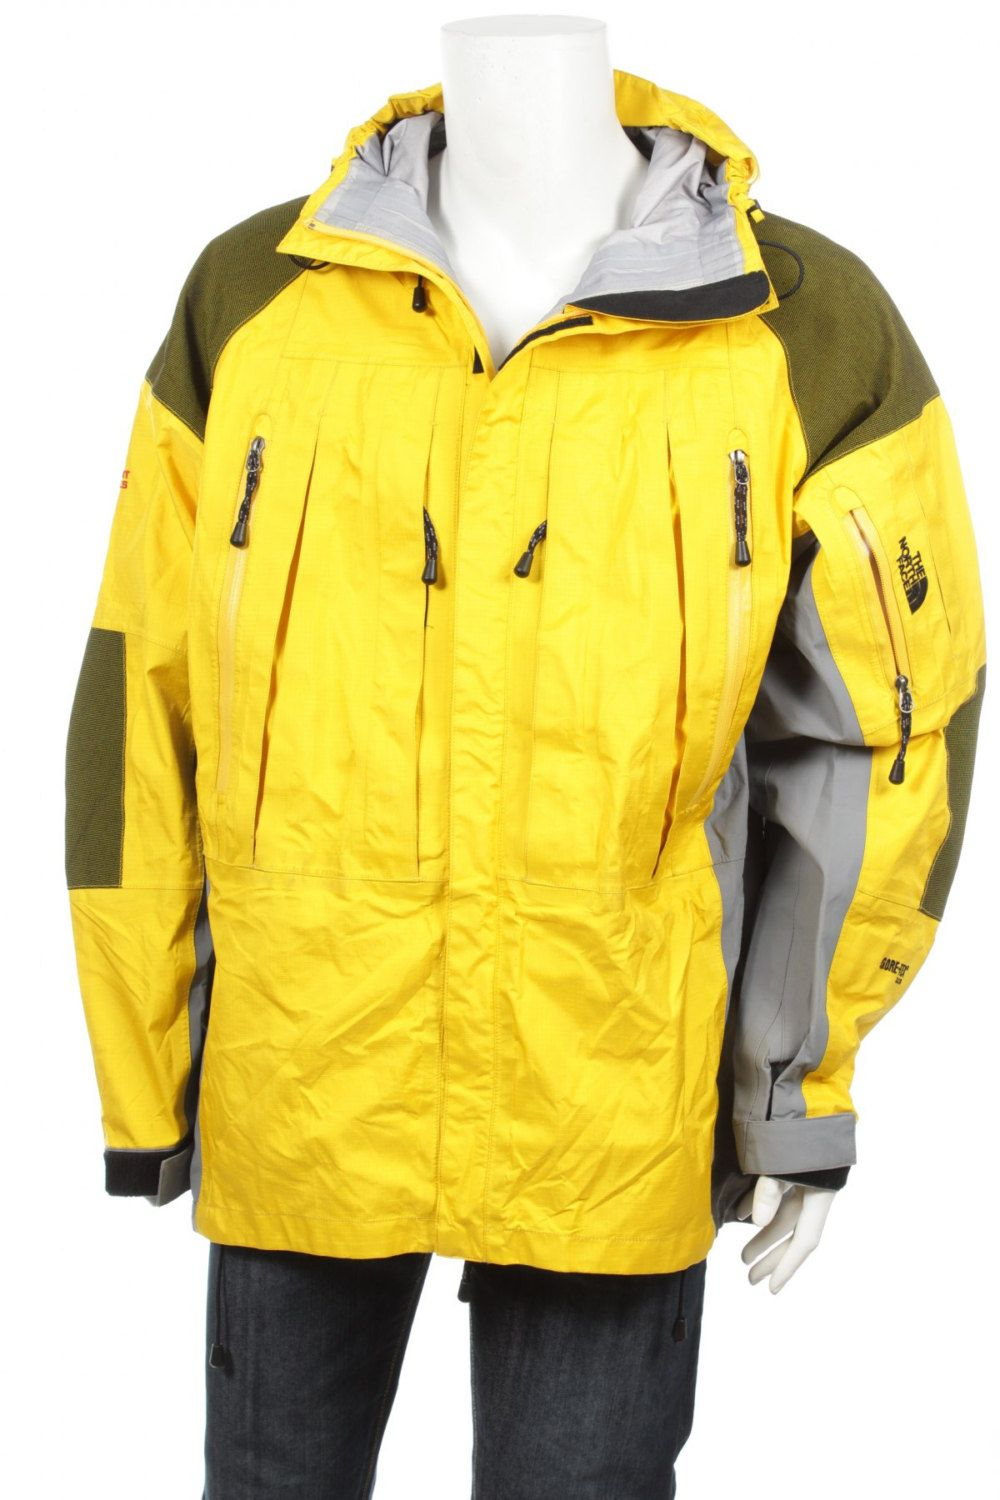 6a955f20b8 The North Face Summit Series Gore-Tex XCR Waterproof Hooded Jacket  yellow Black Men s XXL by VapeoVintage on Etsy